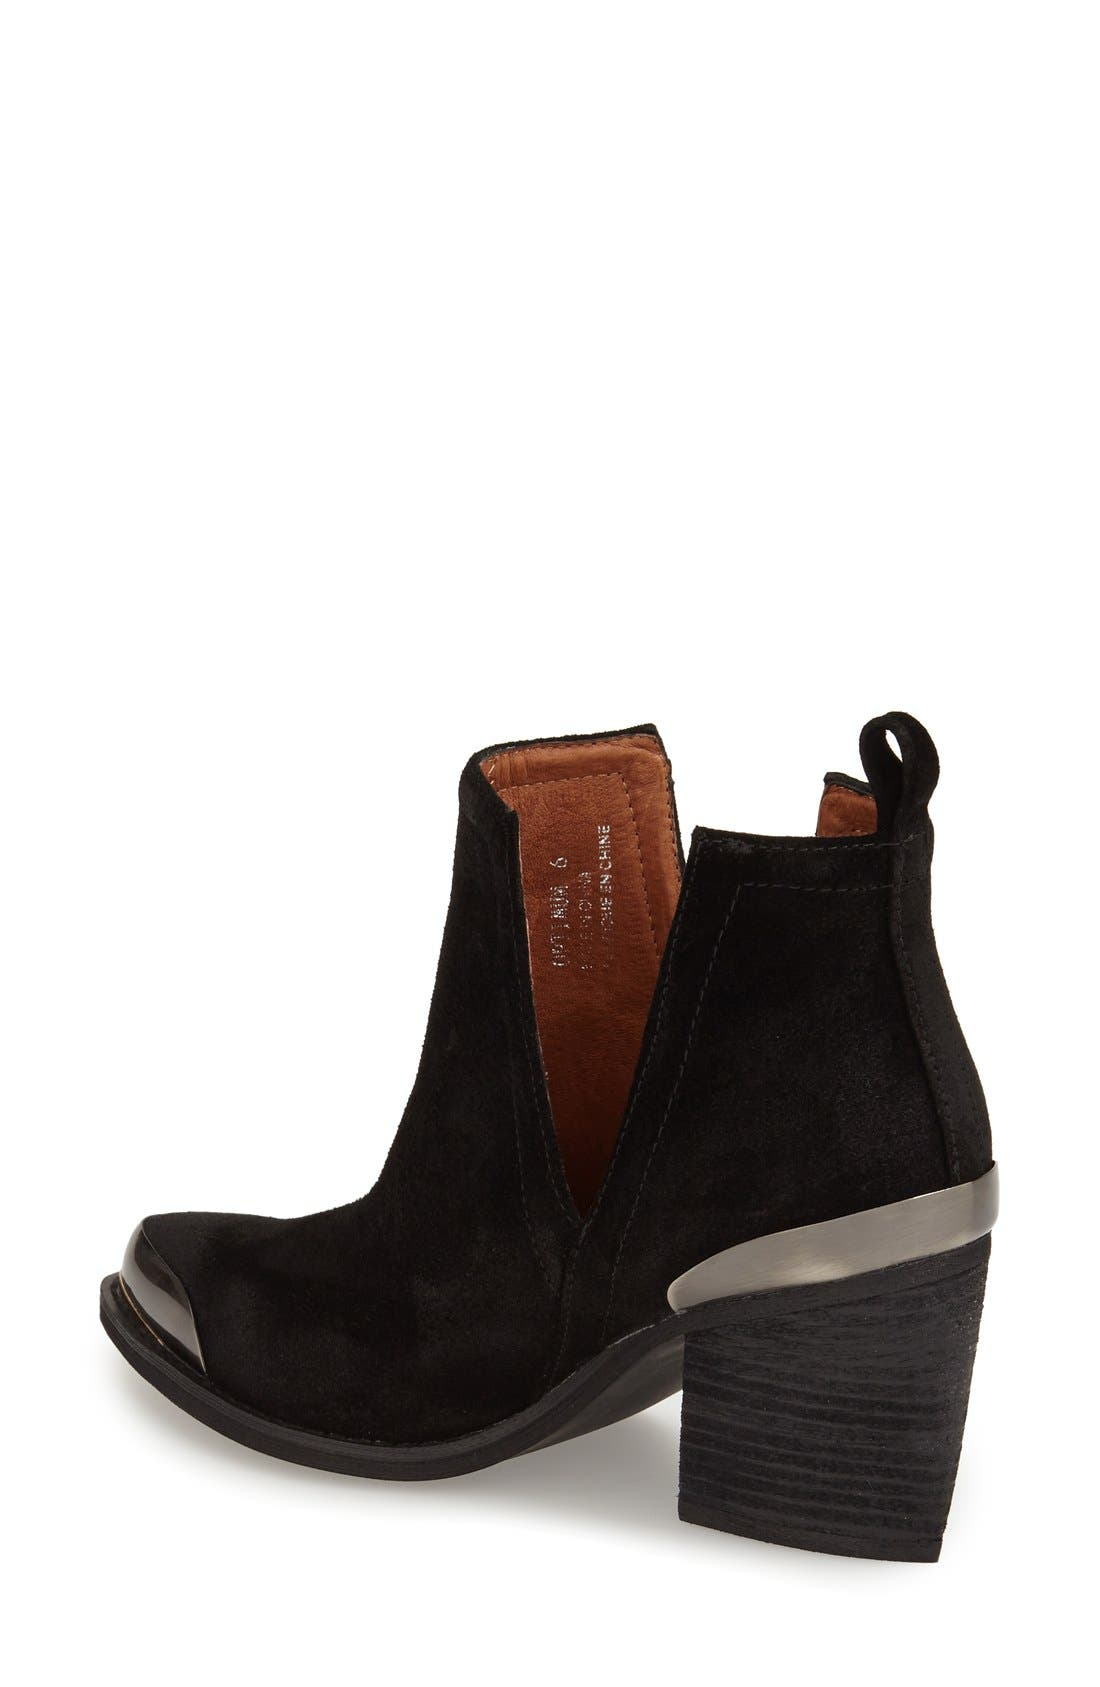 Alternate Image 2  - Jeffrey Campbell 'Optimum' Split Shaft Bootie (Women)